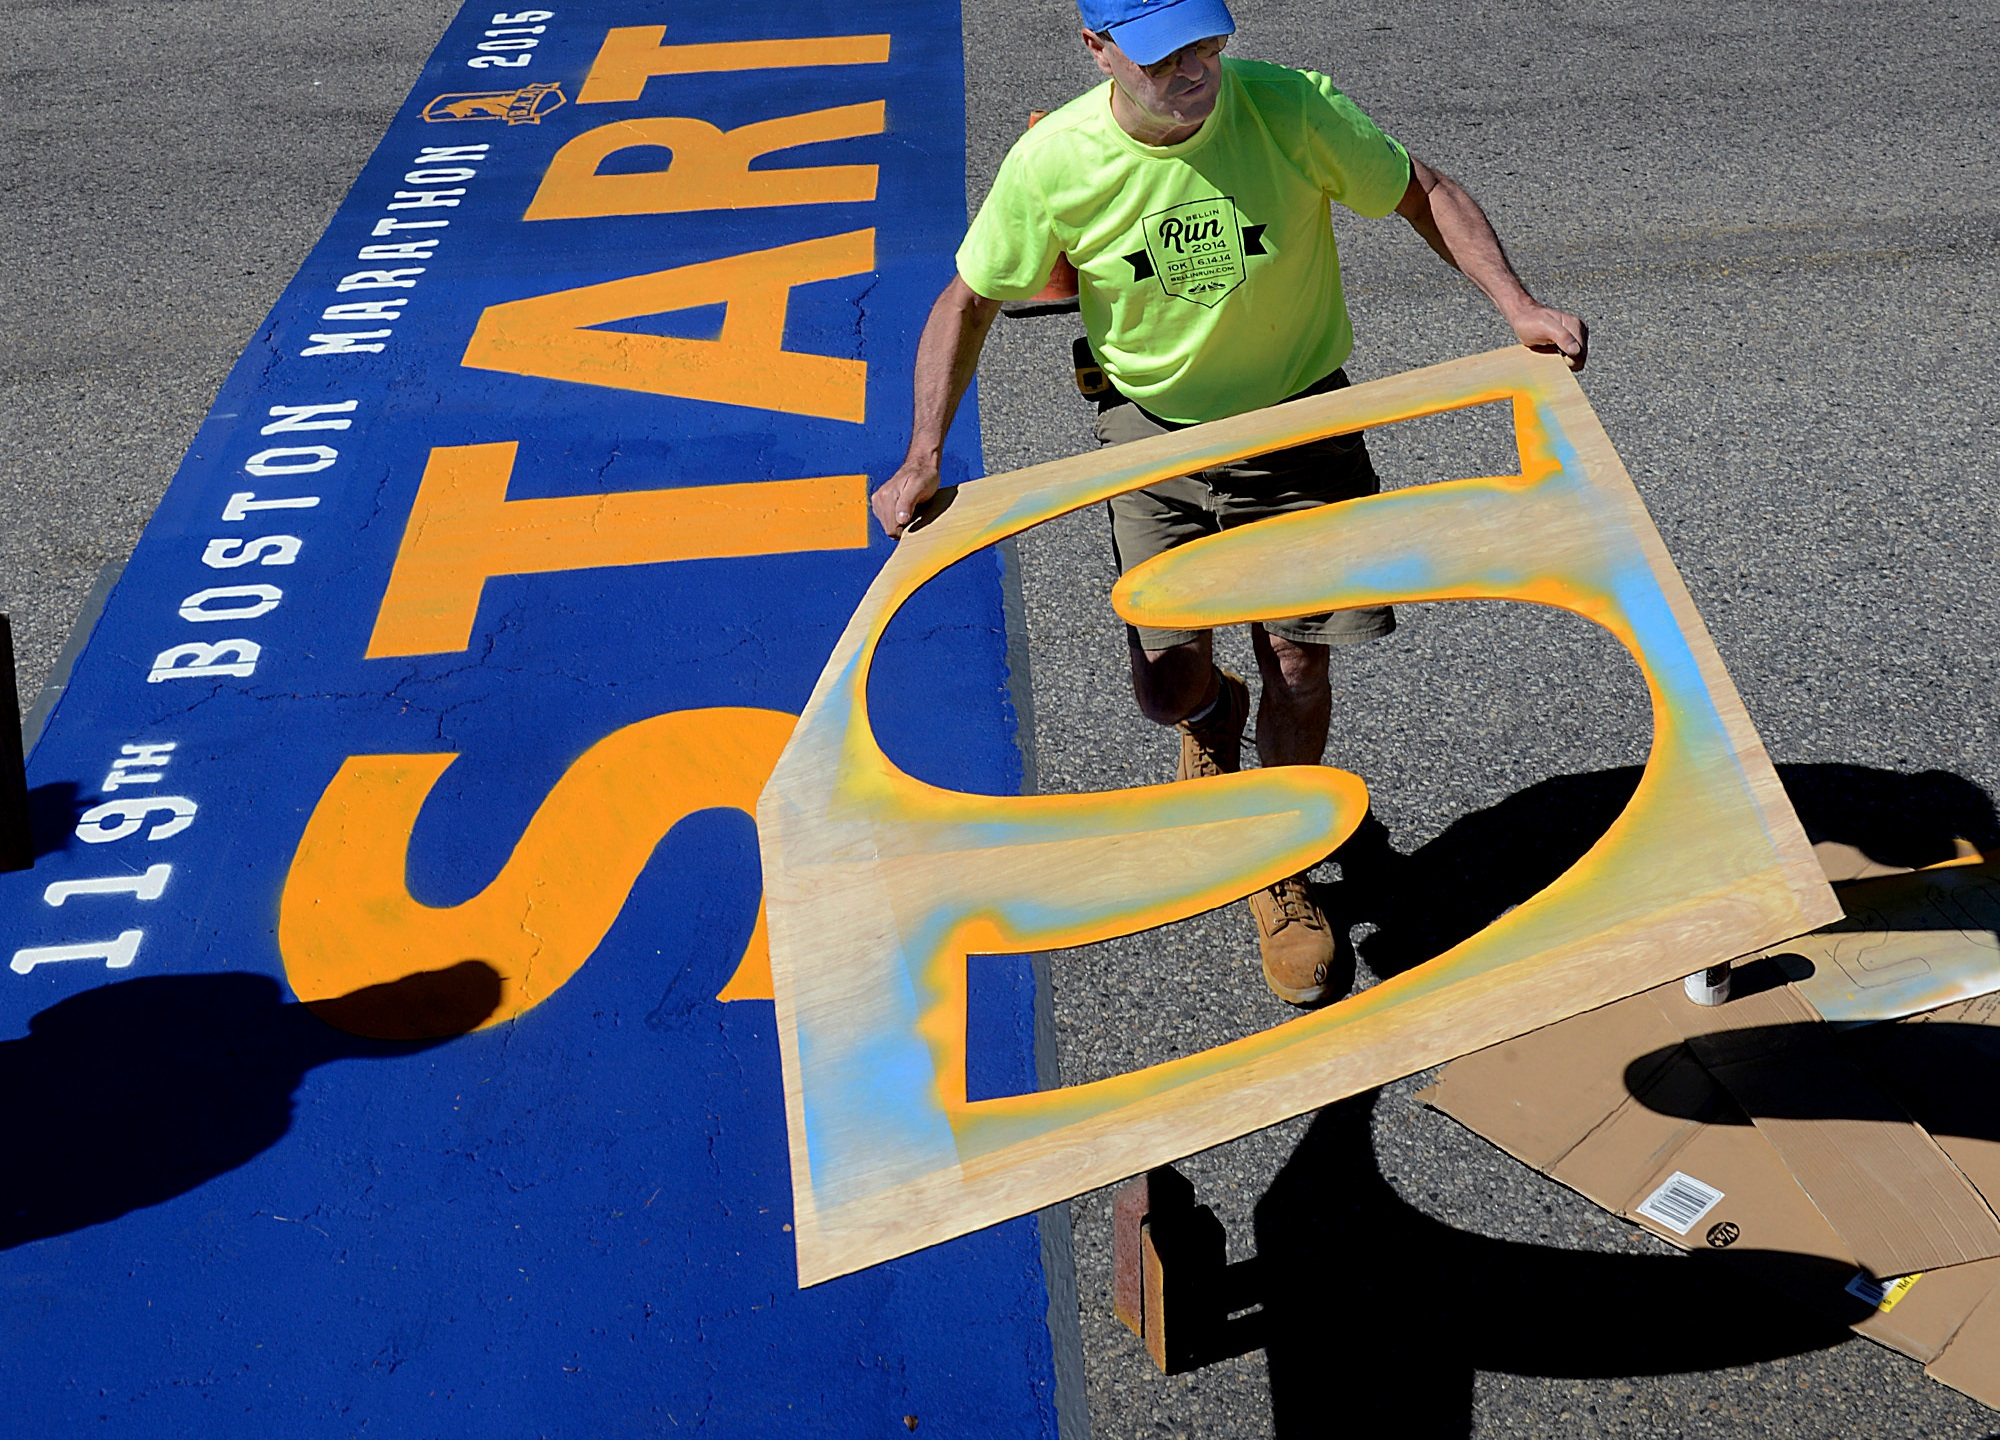 Boston_Marathon_Line_Painter_32849-159532.jpg43862712